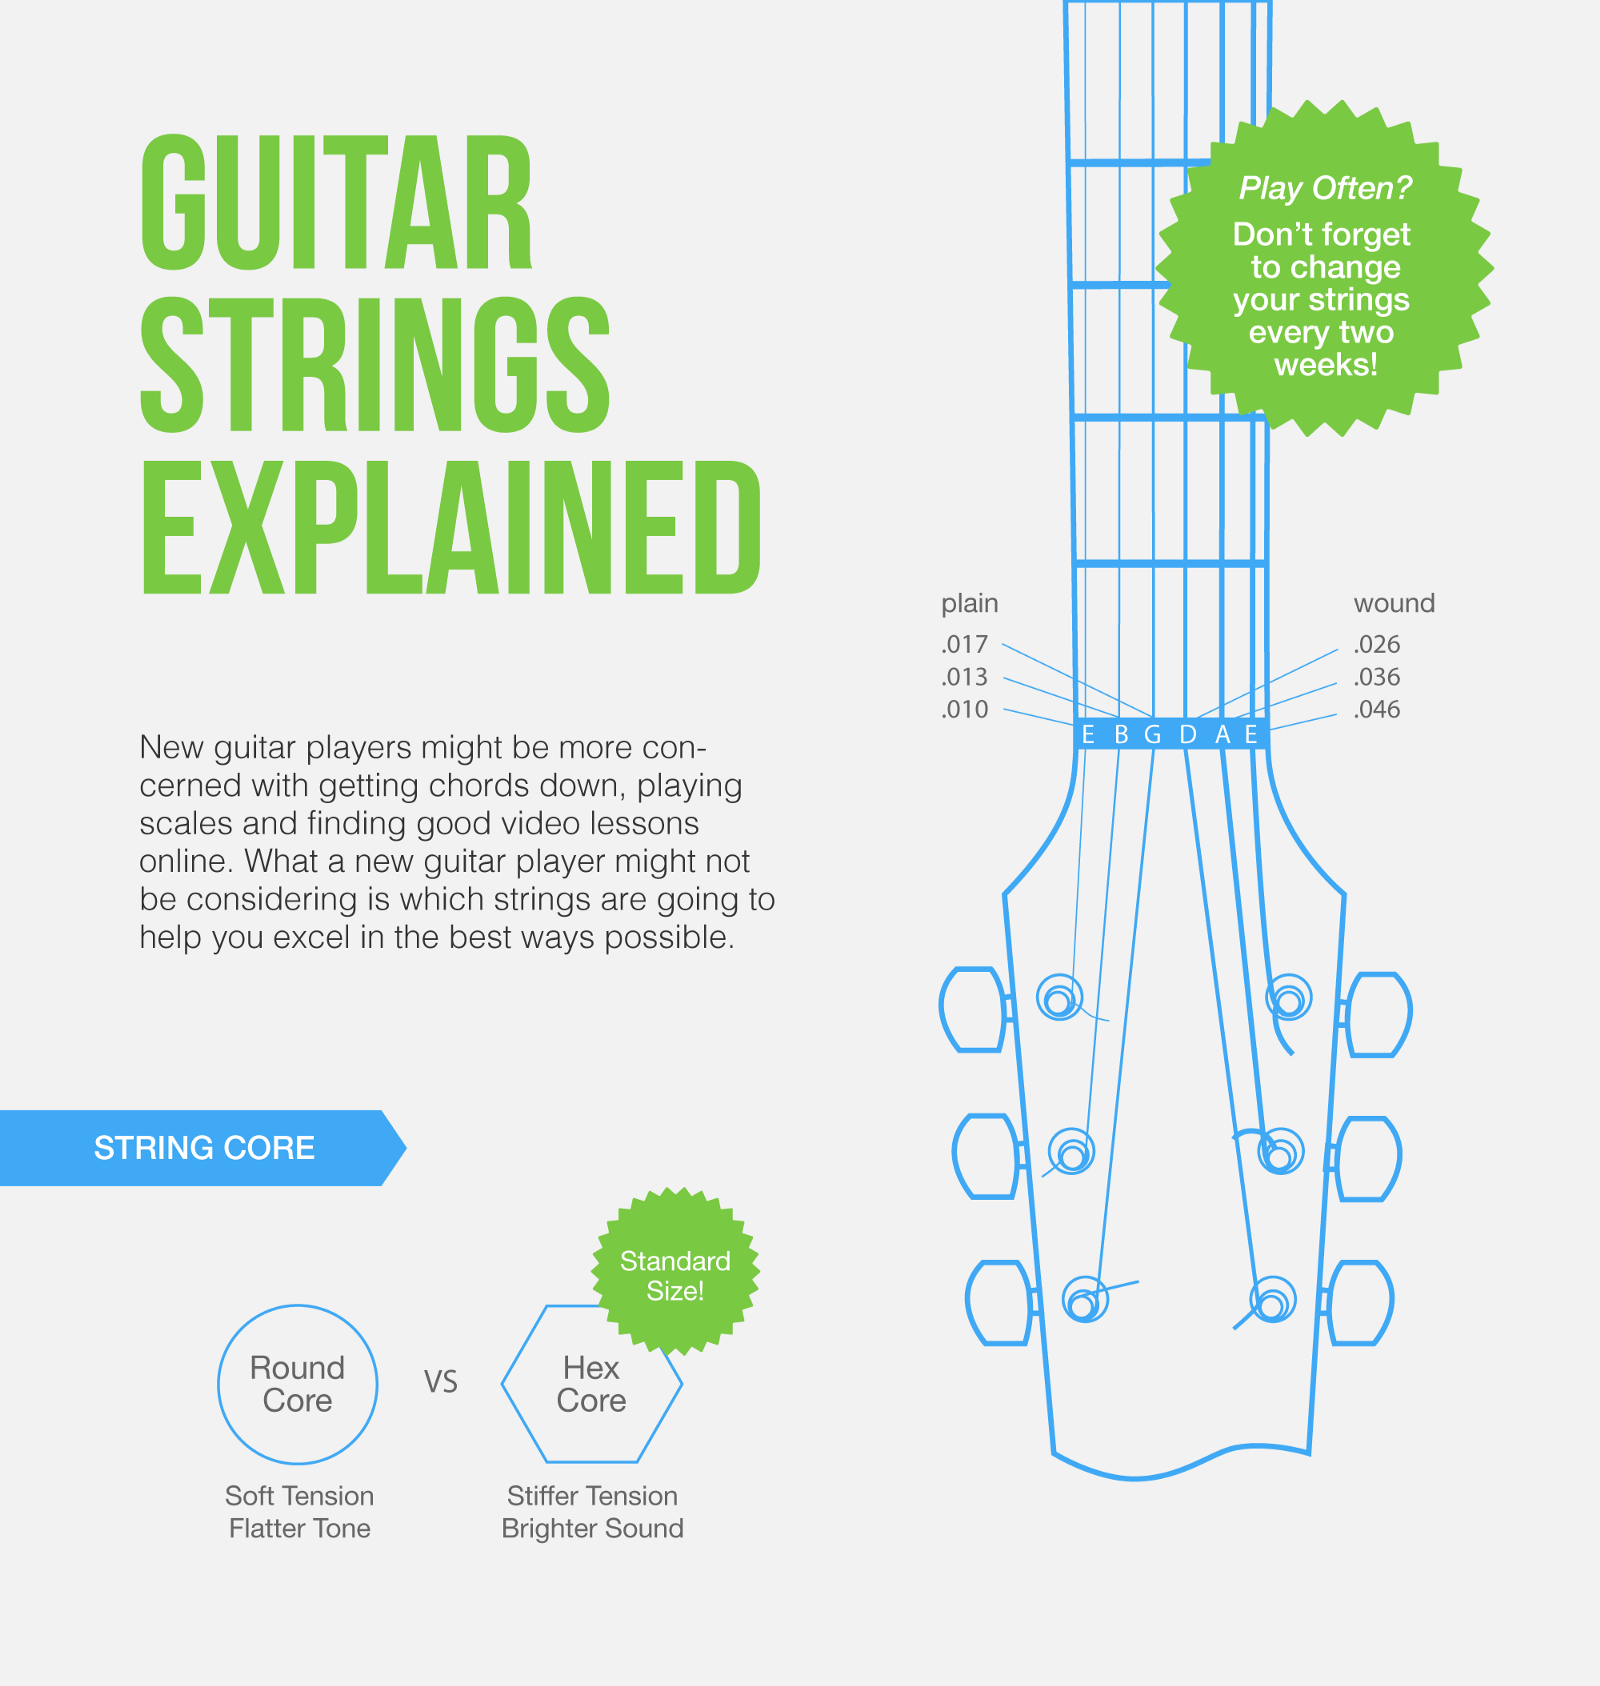 guitar strings explained cascio music medium. Black Bedroom Furniture Sets. Home Design Ideas